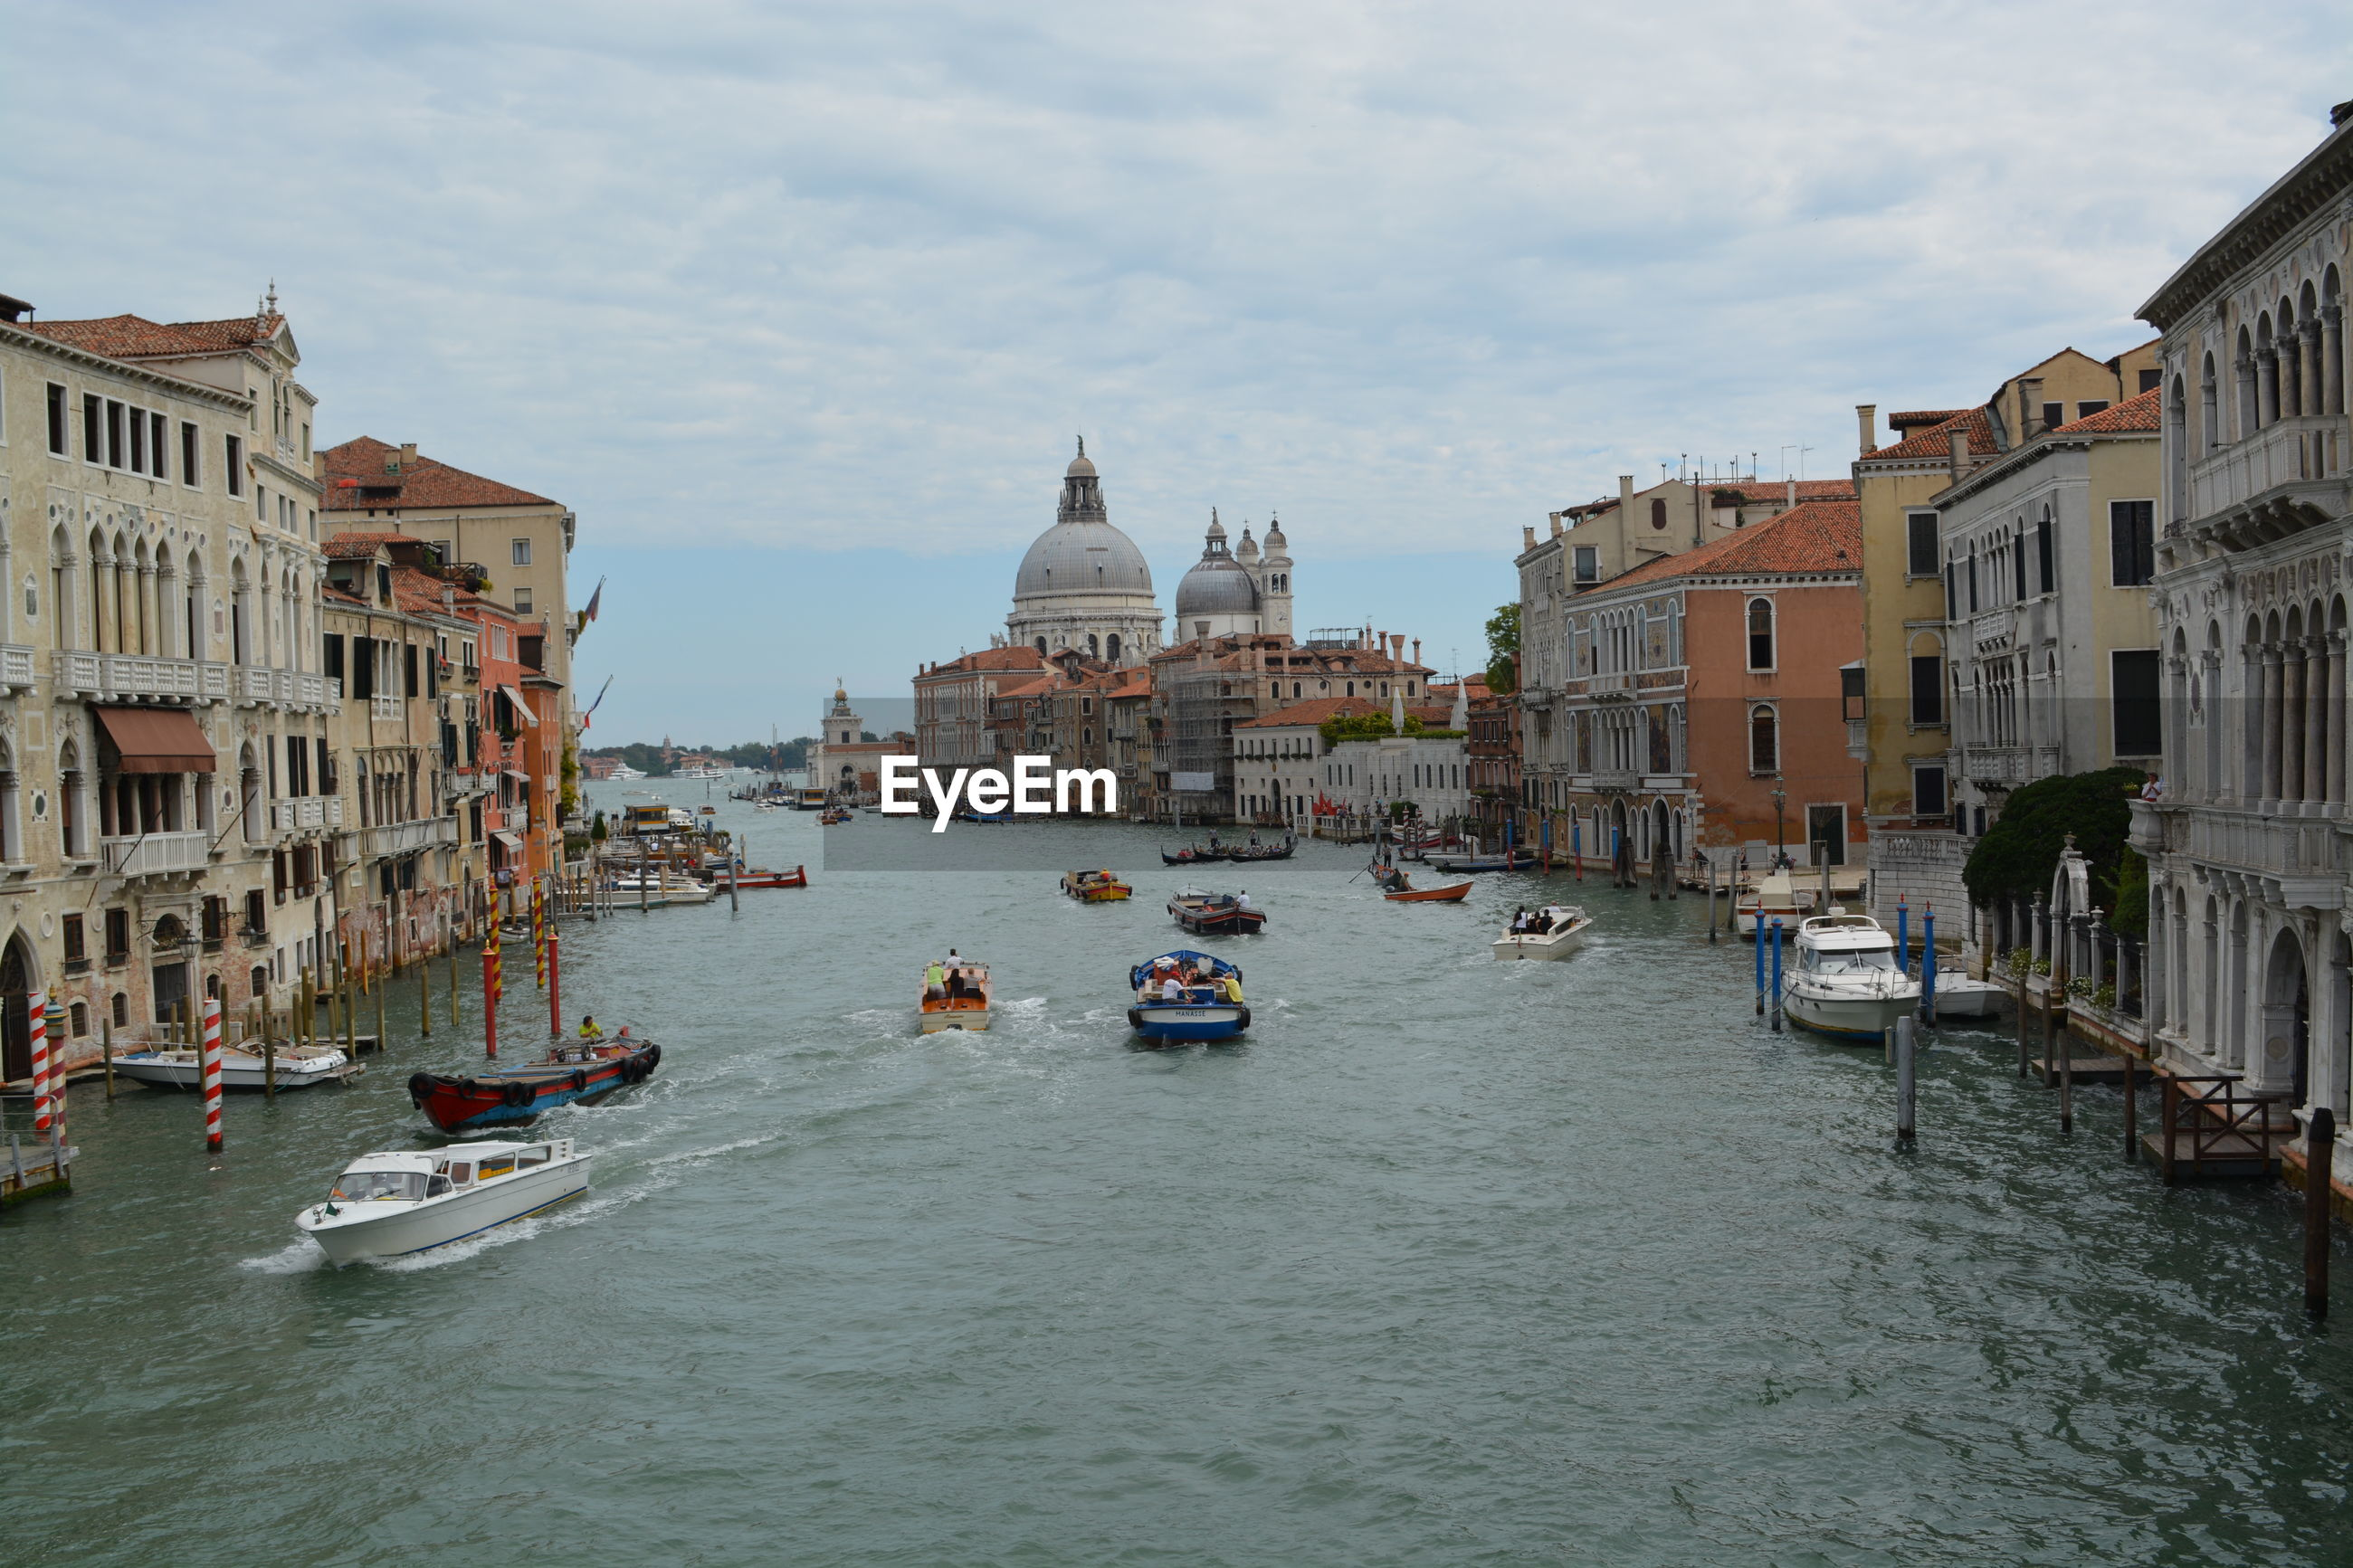 Boats on grand canal amidst buildings in city